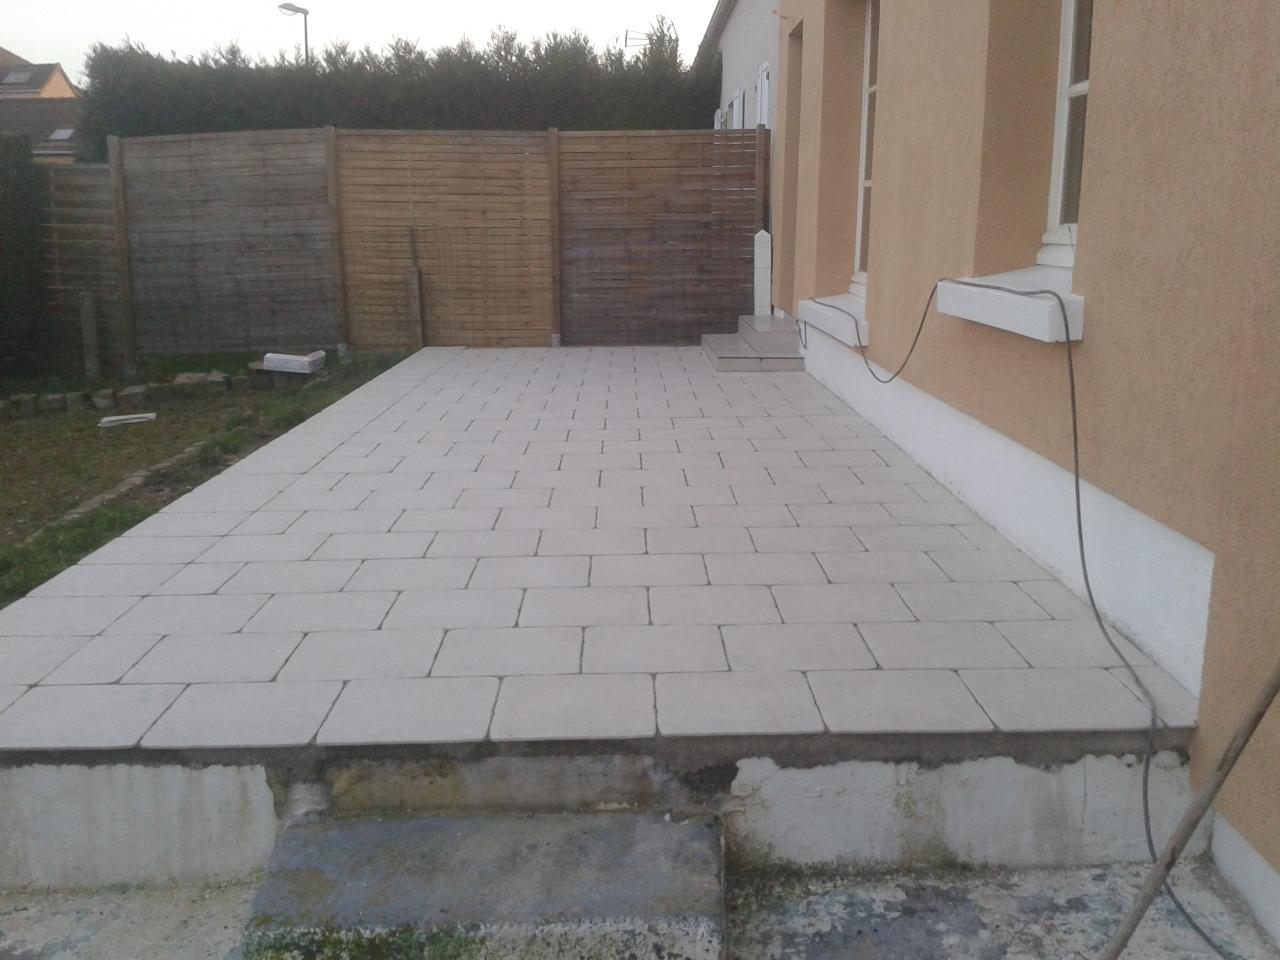 Pose de carrelage sur ancien carrelage maison design for Poser du carrelage